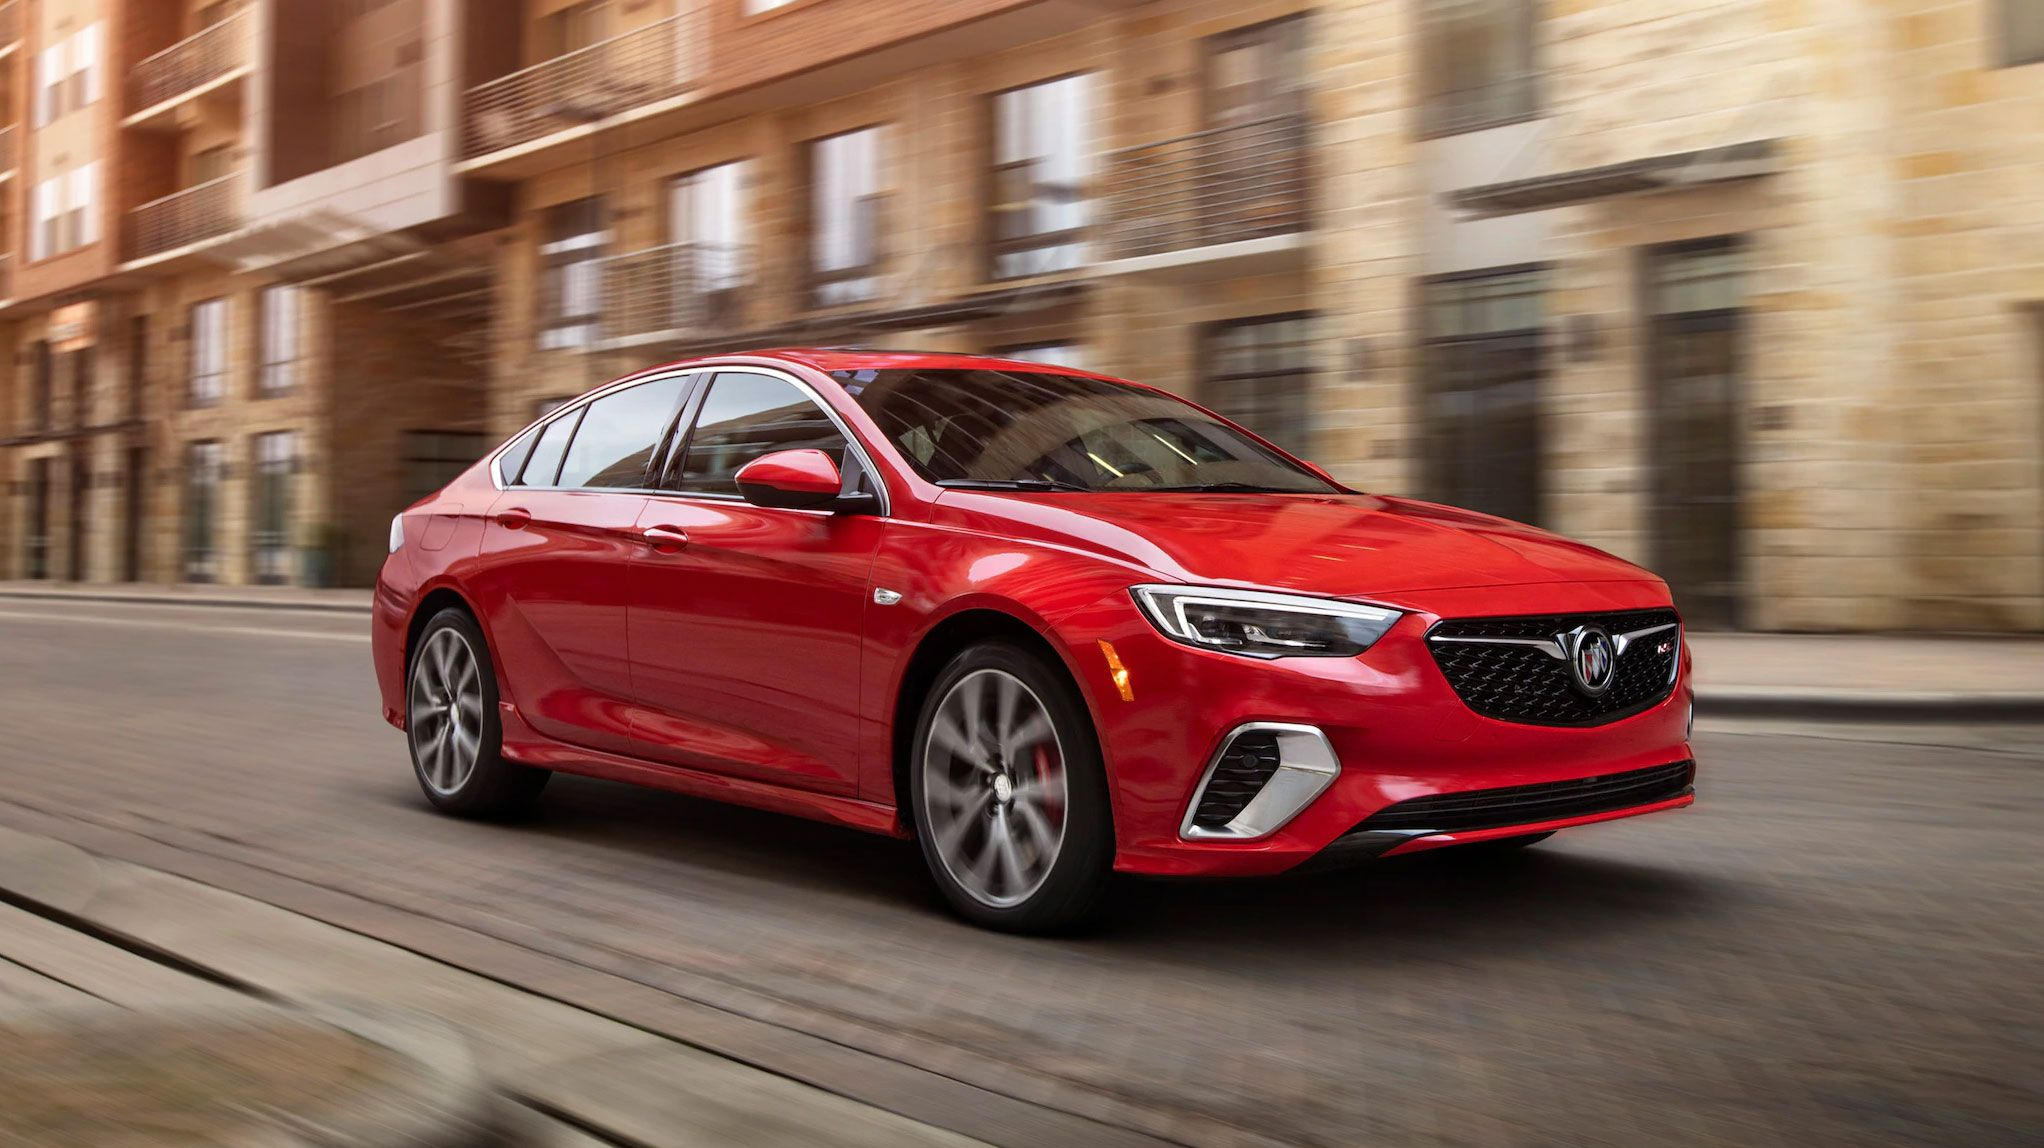 2020 Buick Regal Gs Review, Pricing, And Specs New 2021 Buick Regal Awd, Dimensions, Price